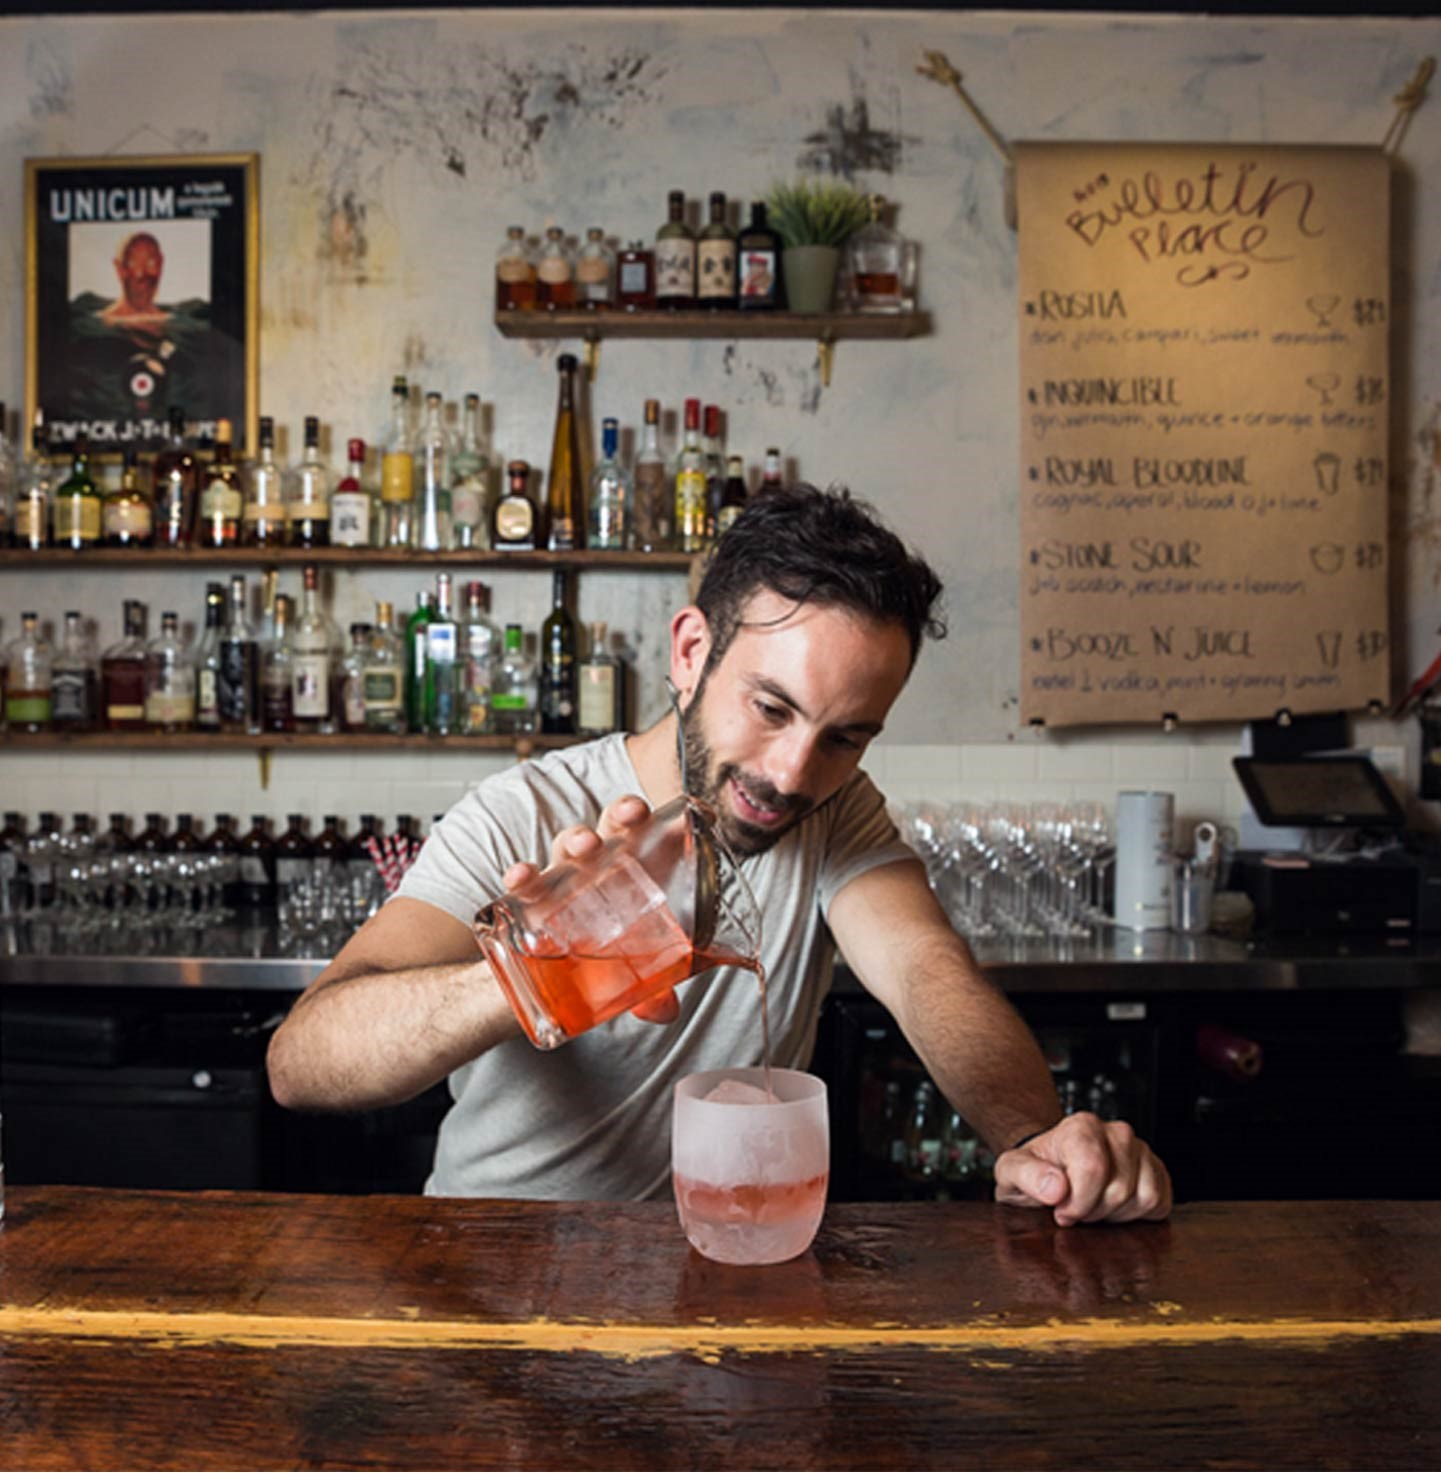 "<p>When he's not travelling the world teaching other bartenders, Tim Philips is a humble servant in his own small bar, Bulletin Place. Here he is making his Ketel One vodka 'Van Diemen's Trilogy'.</p> <a href=""http://www.bulletinplace.com"">www.bulletinplace.com</a>"